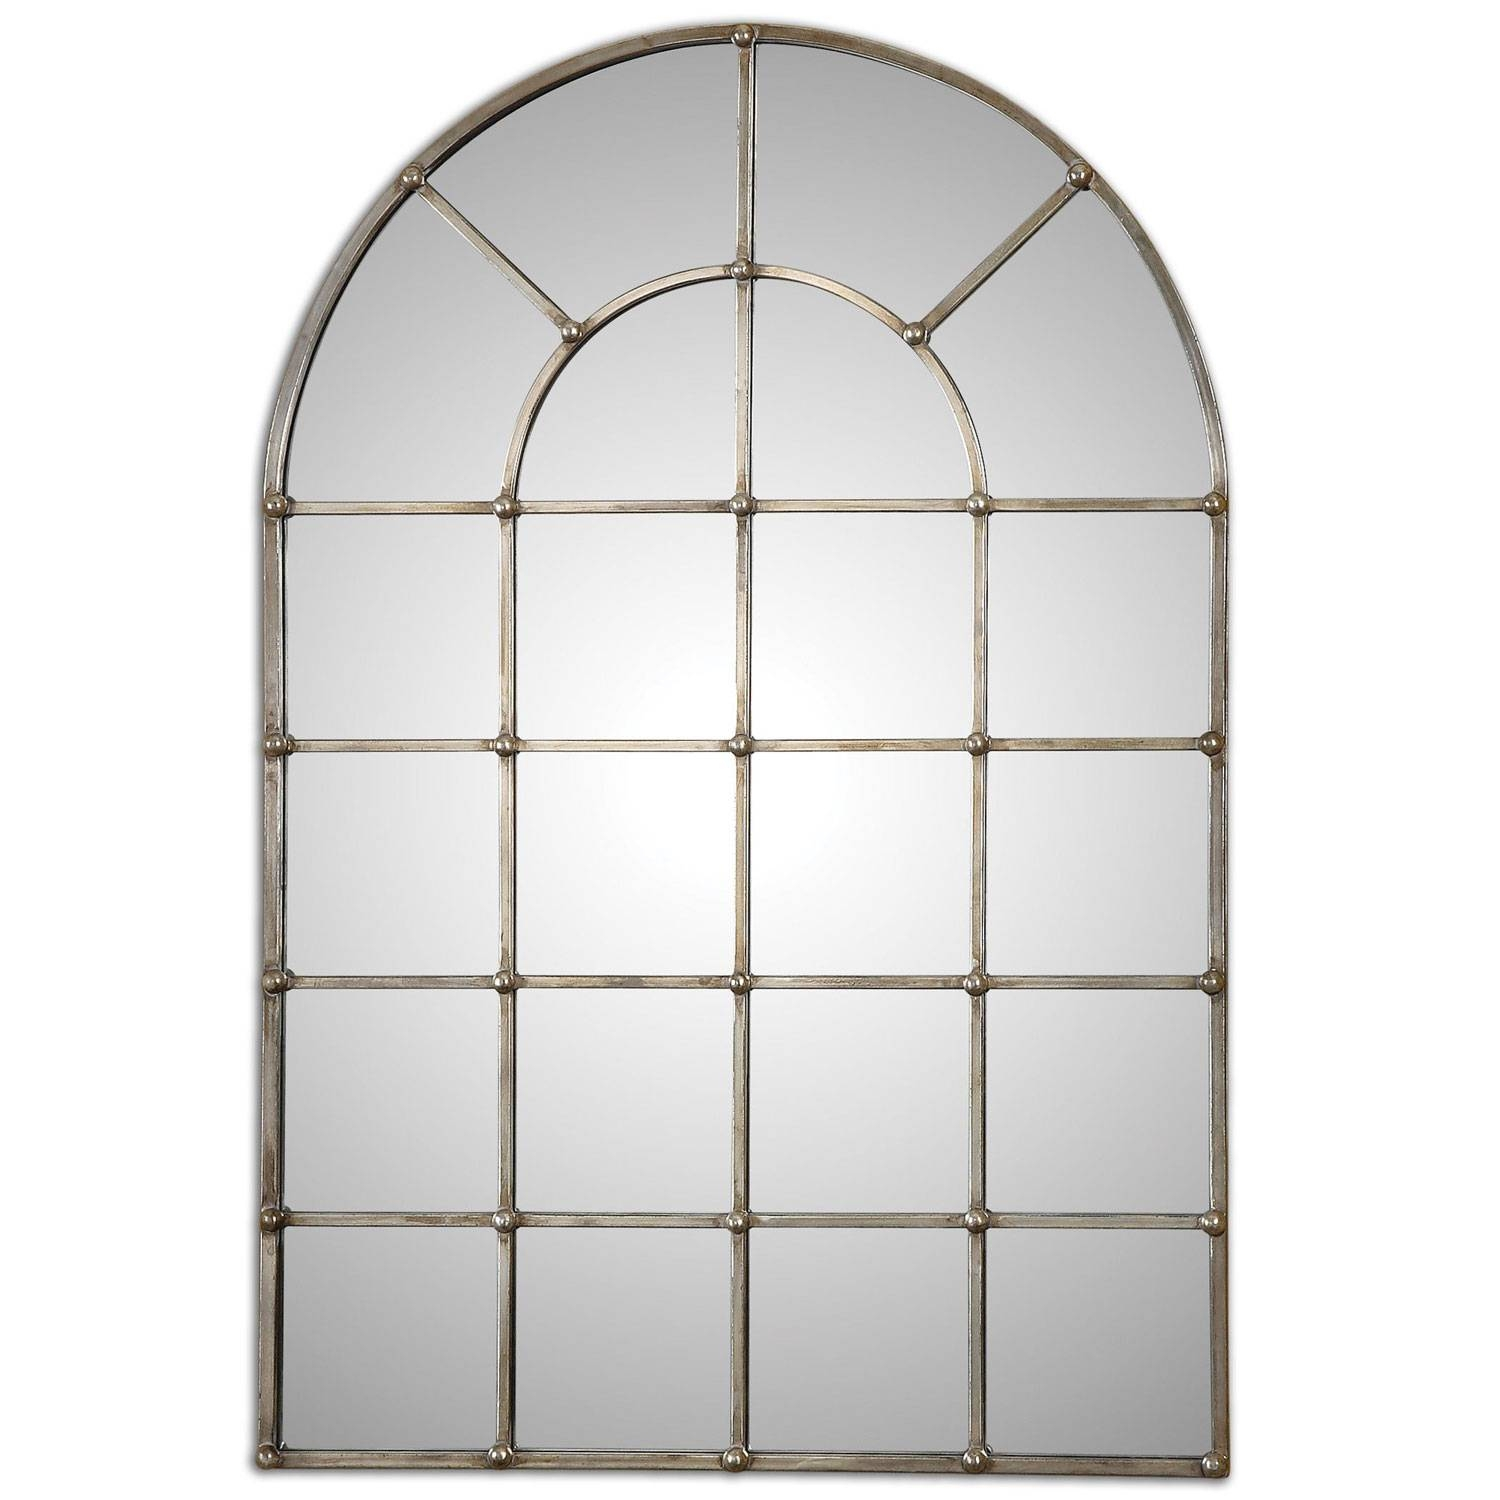 Stunning Design Arched Wall Mirror Absolutely Smart Arched Wall For Arched Wall Mirrors (View 4 of 15)